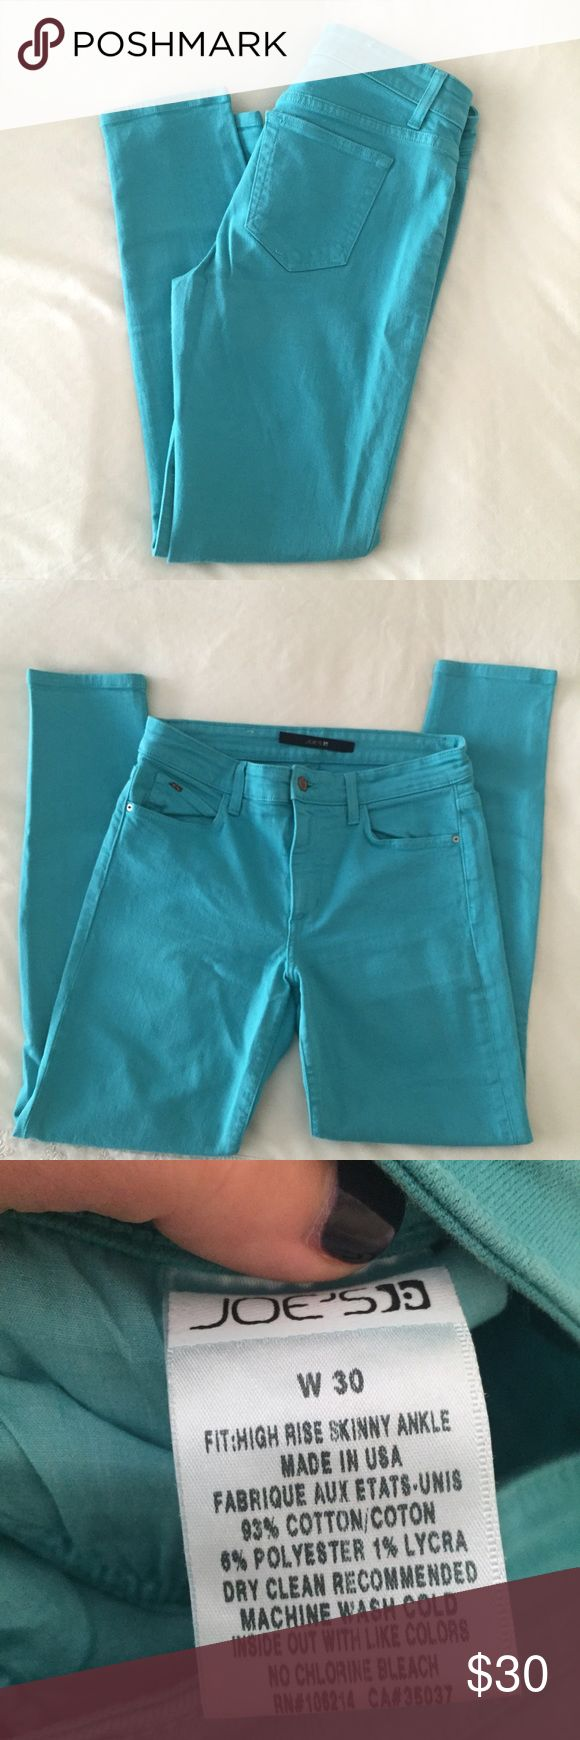 """Joe's Jeans High Rise Skinny Ankle Turquoise Pant Fun pair of colored jeans from Joe's. Beautiful turquoise color. Fit is high rise, skinny ankle. 27"""" inseam, 9.5"""" rise, 30"""" waist. Hardly worn! Joe's Jeans Jeans Skinny"""